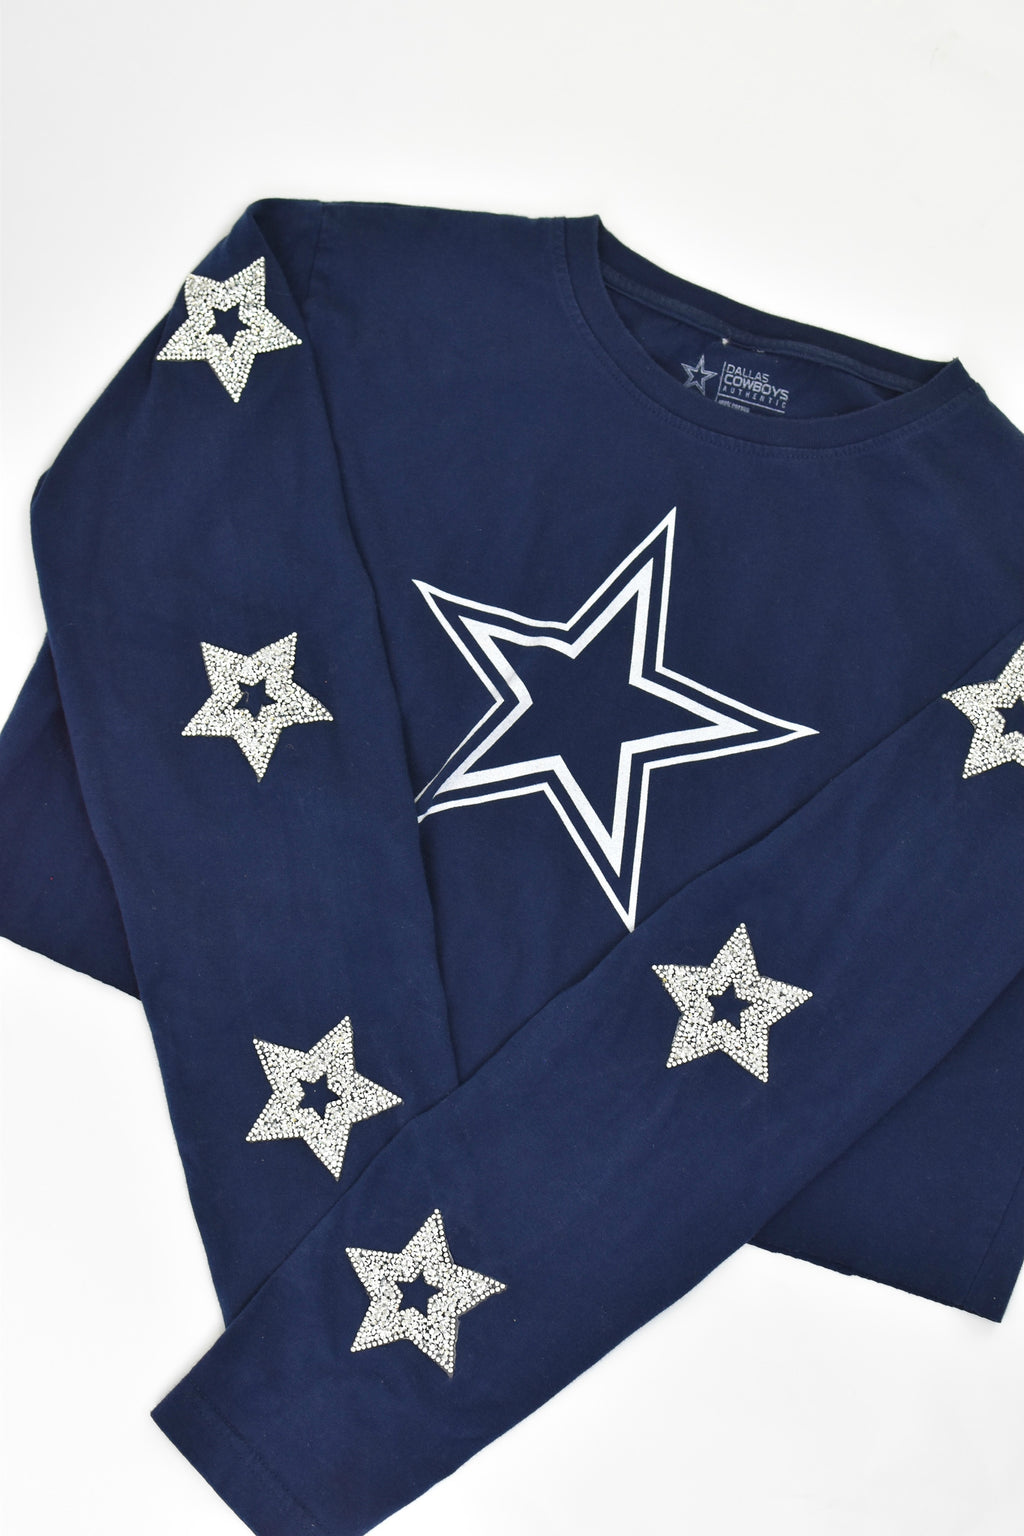 Upcycled Vintage Cowboys Flannel Sweatshirt